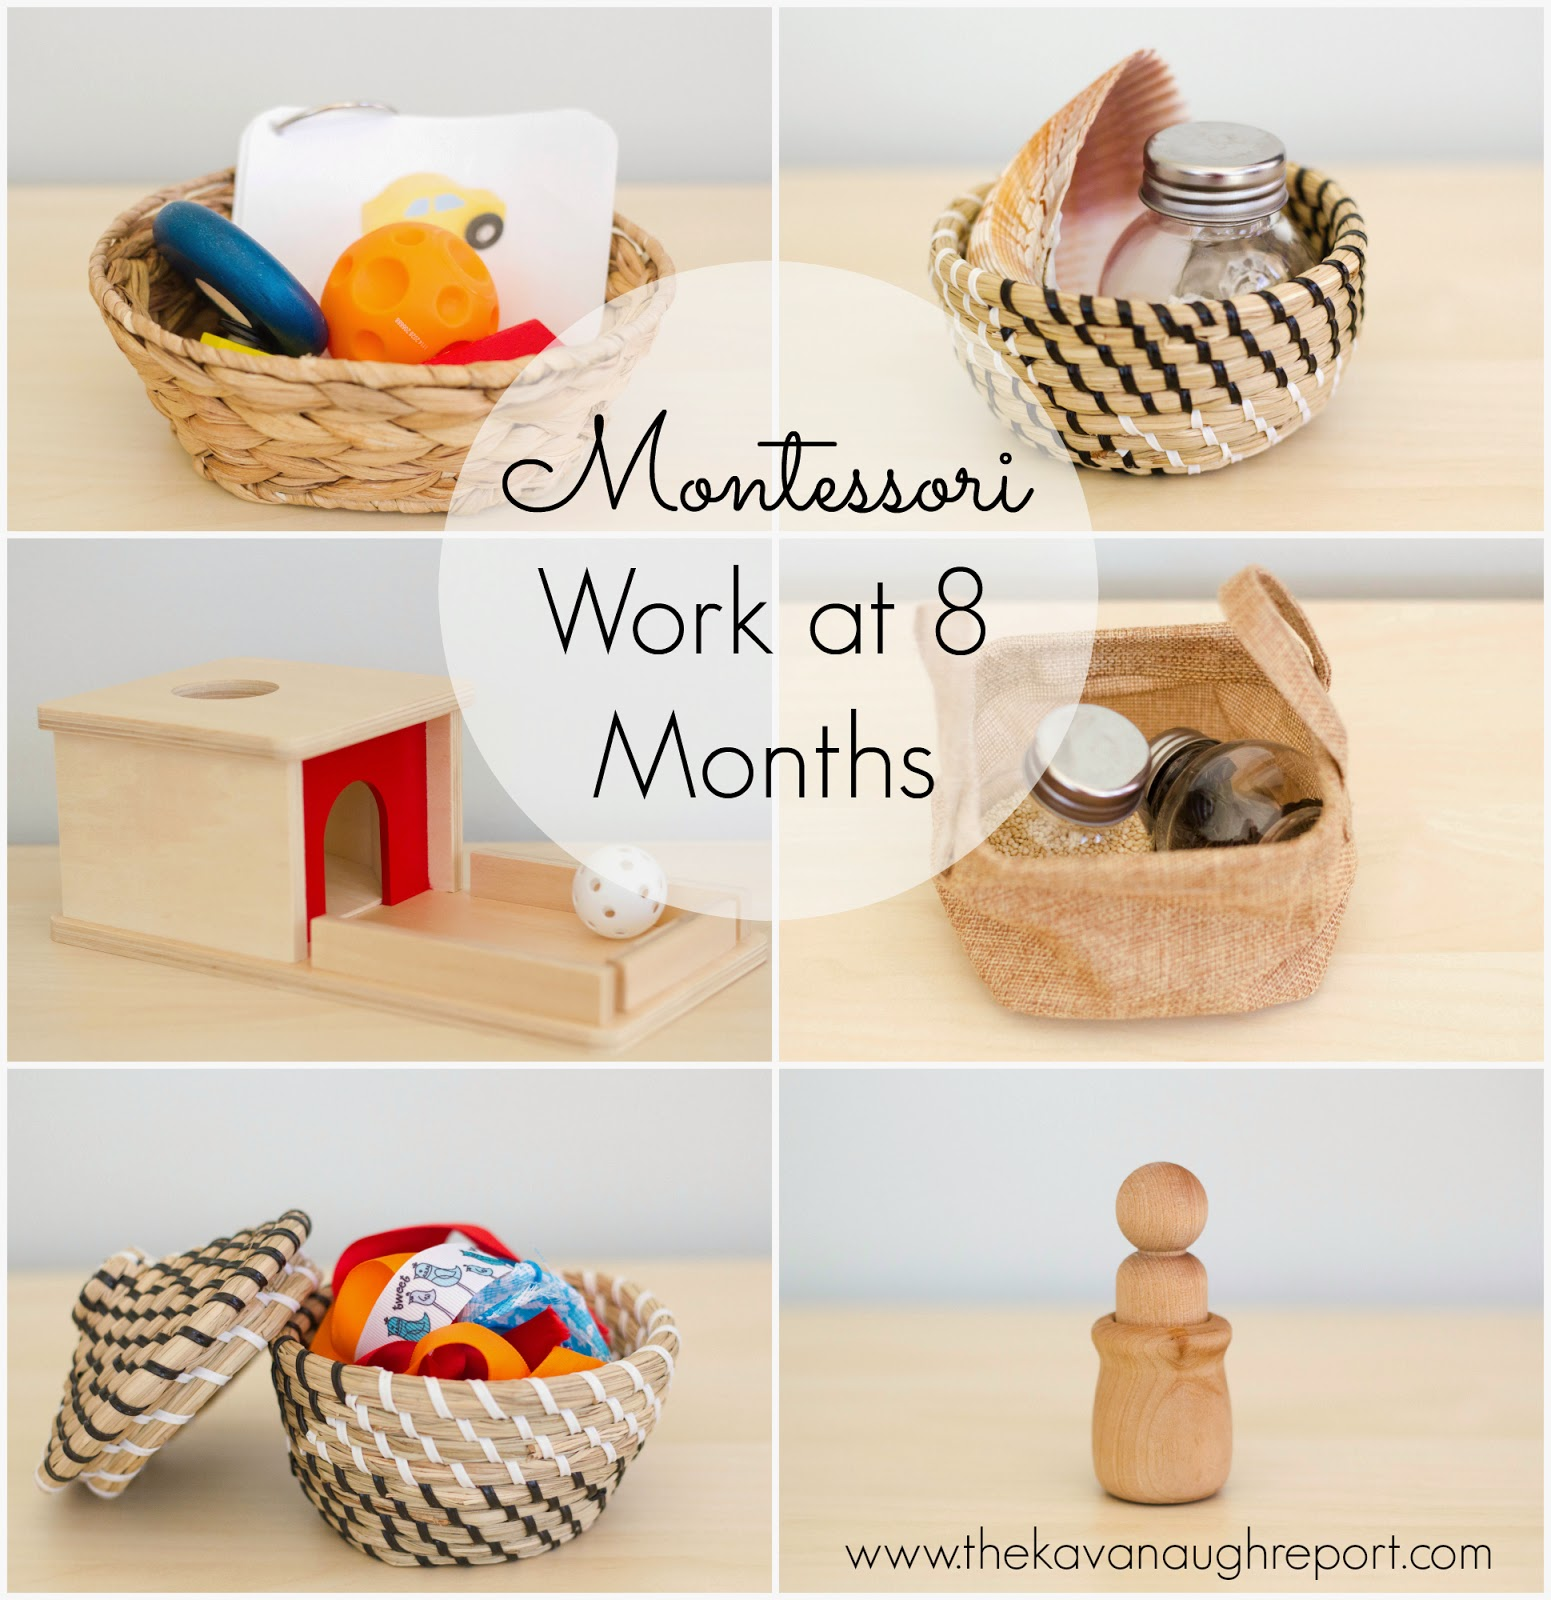 Montessori baby play at 8-months-old. Here are some Montessori work ideas for babies.